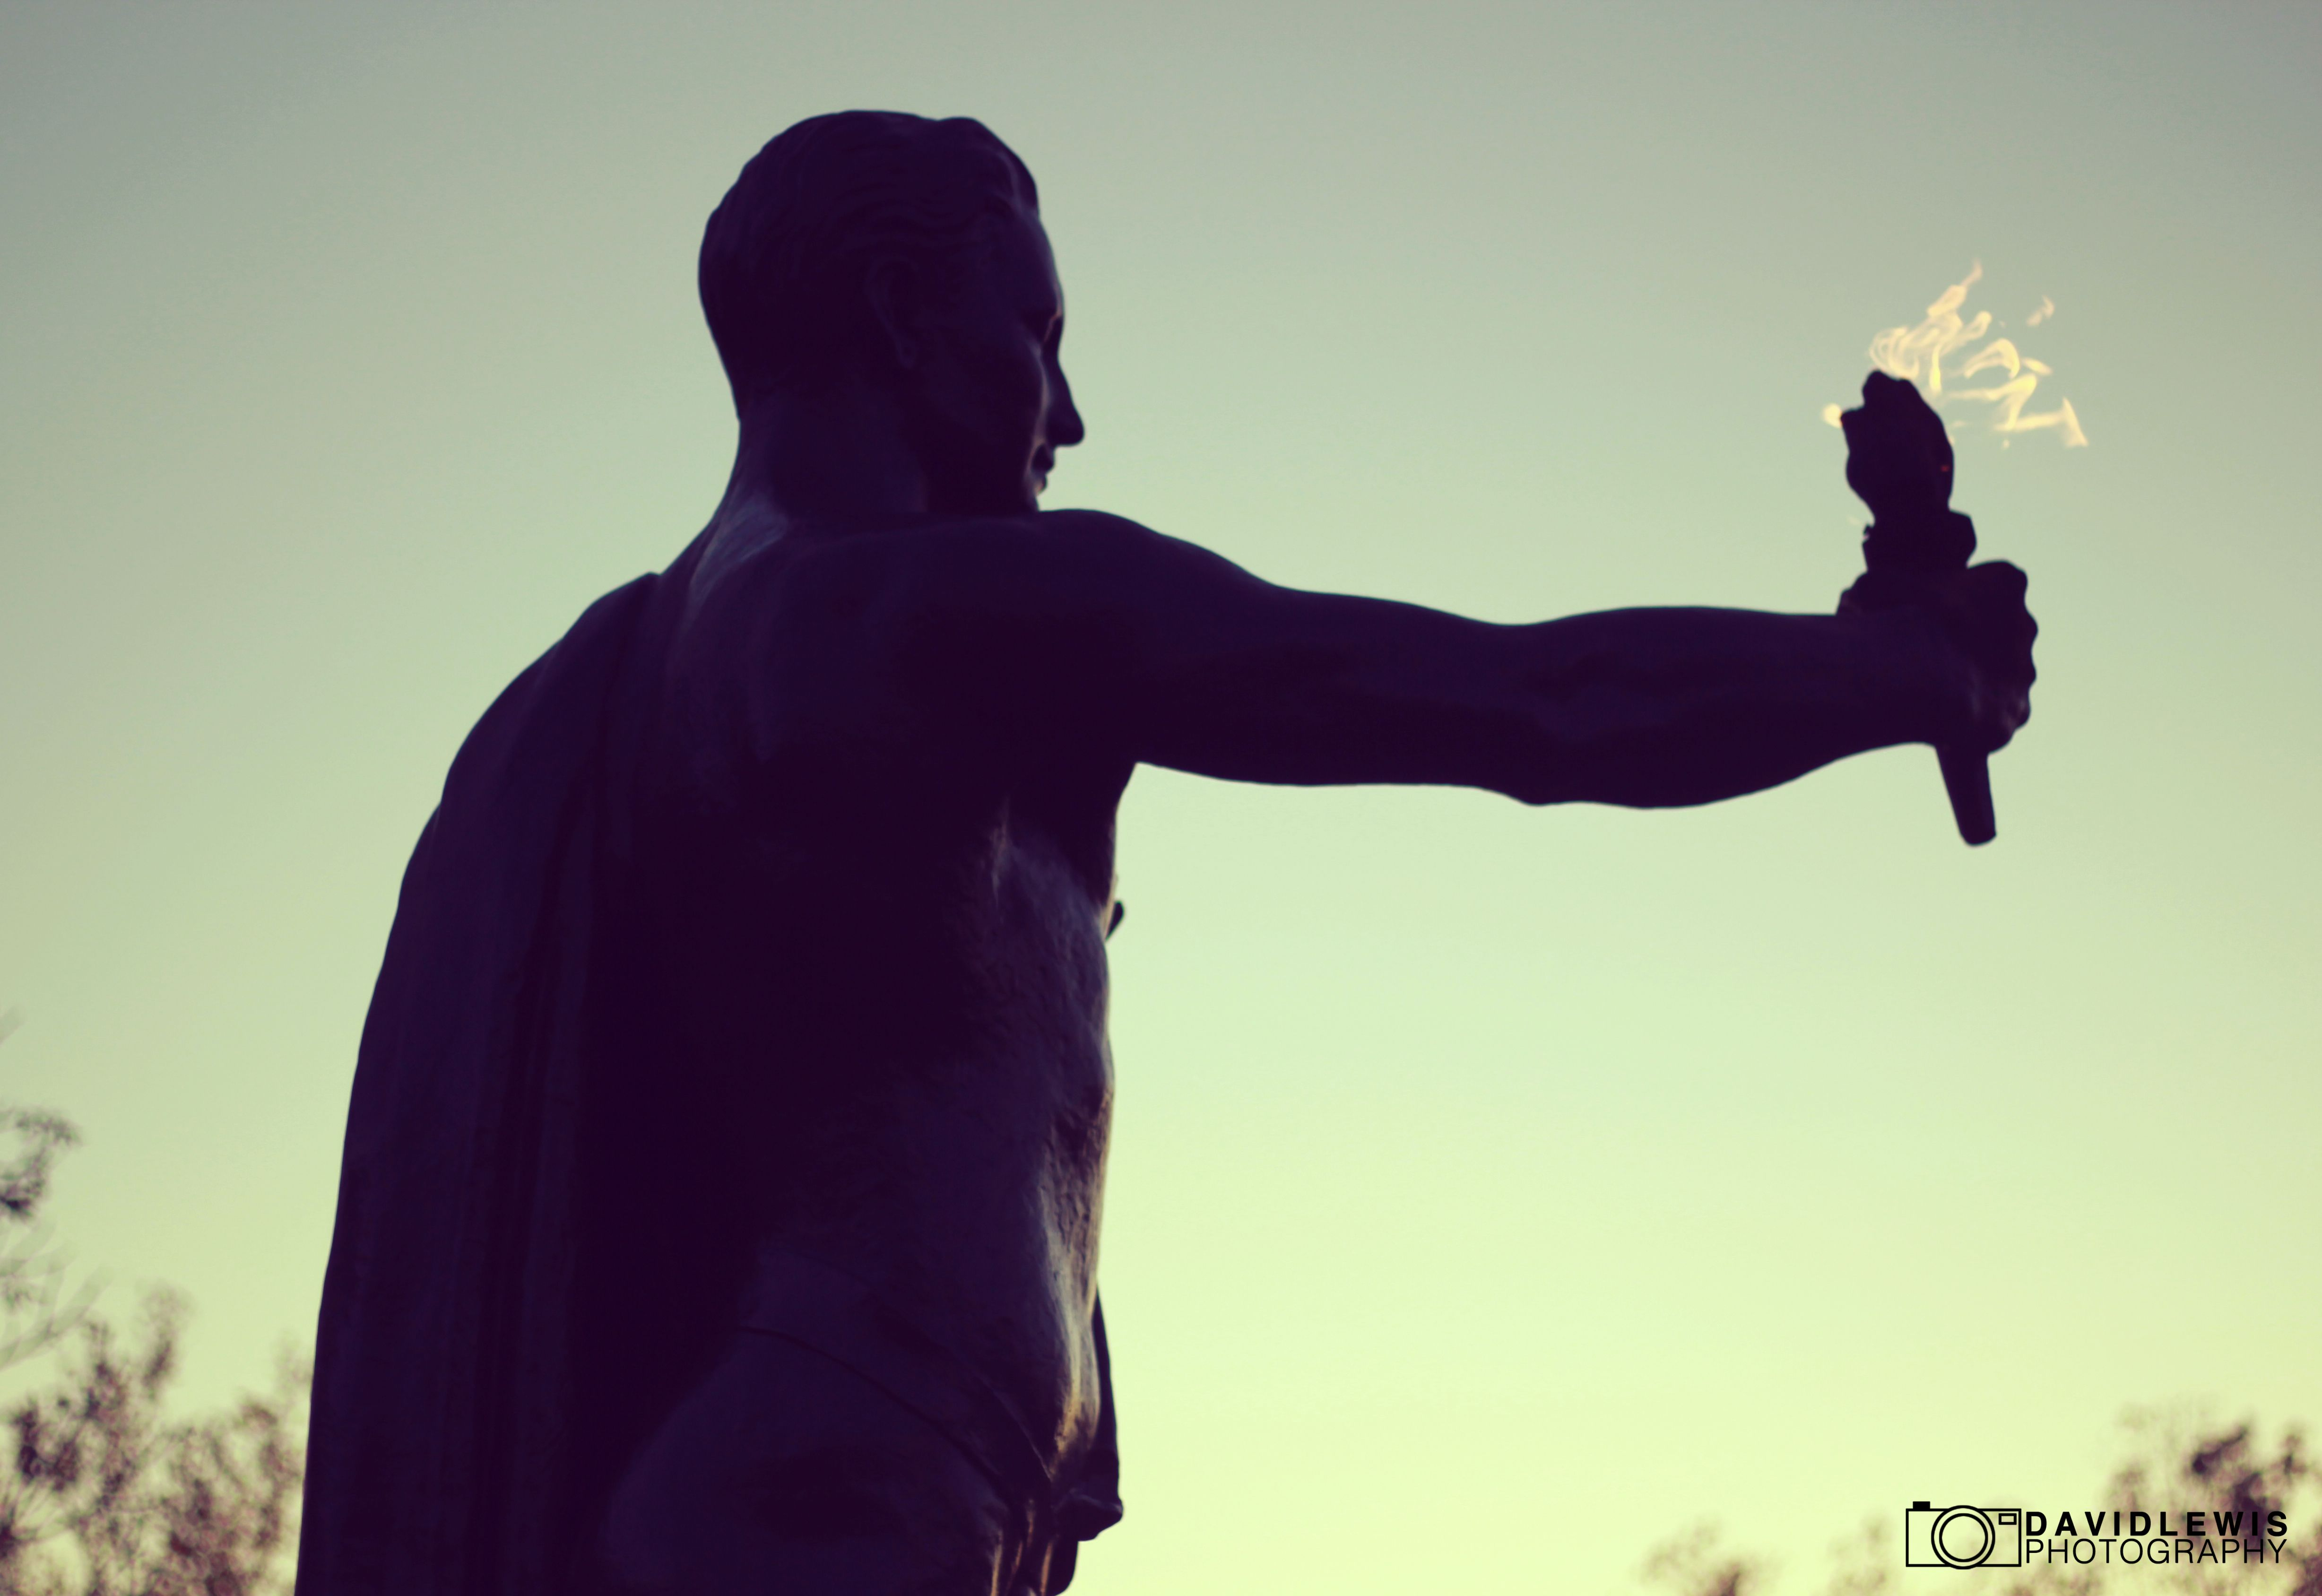 University of Tennessee Torch Bearer Statue